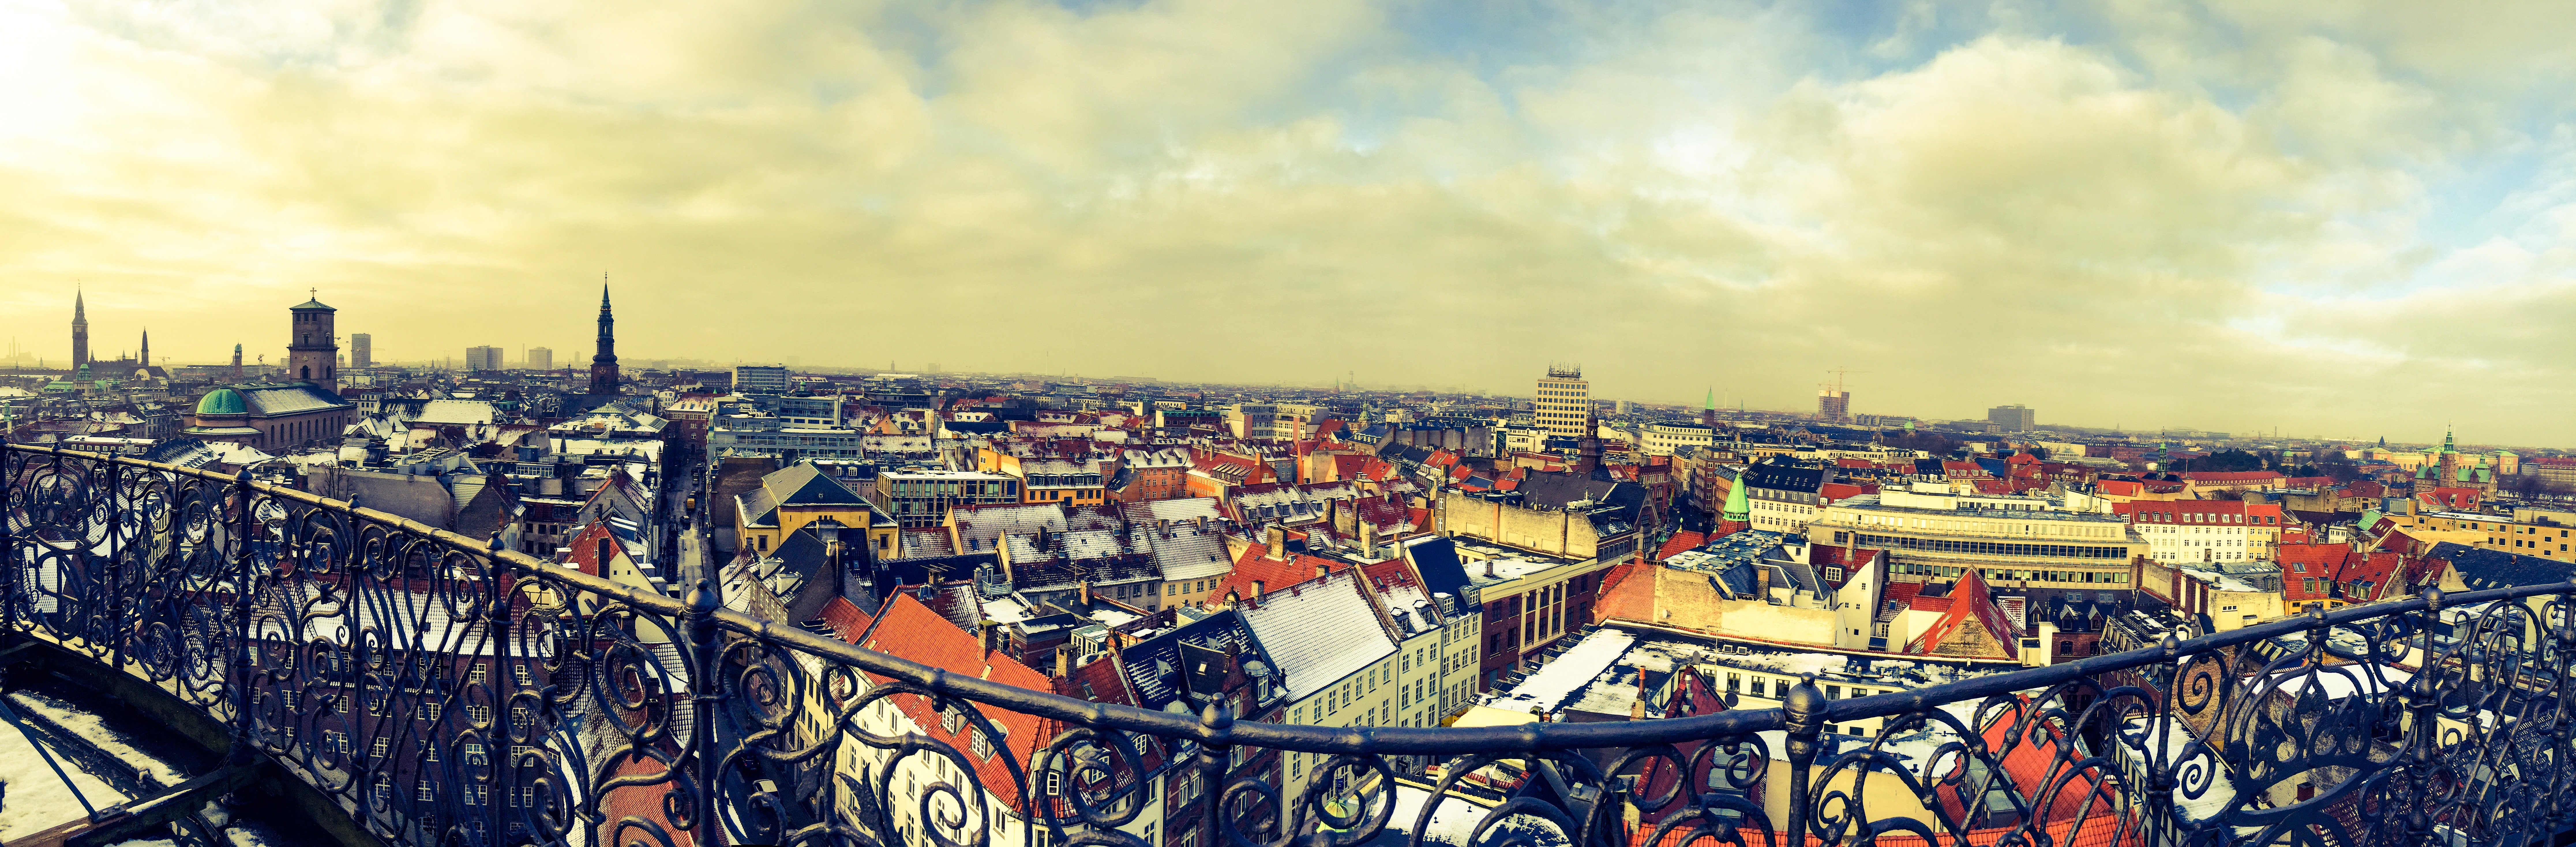 Free stock photo of view of copenhagen from the balcony for From the balcony